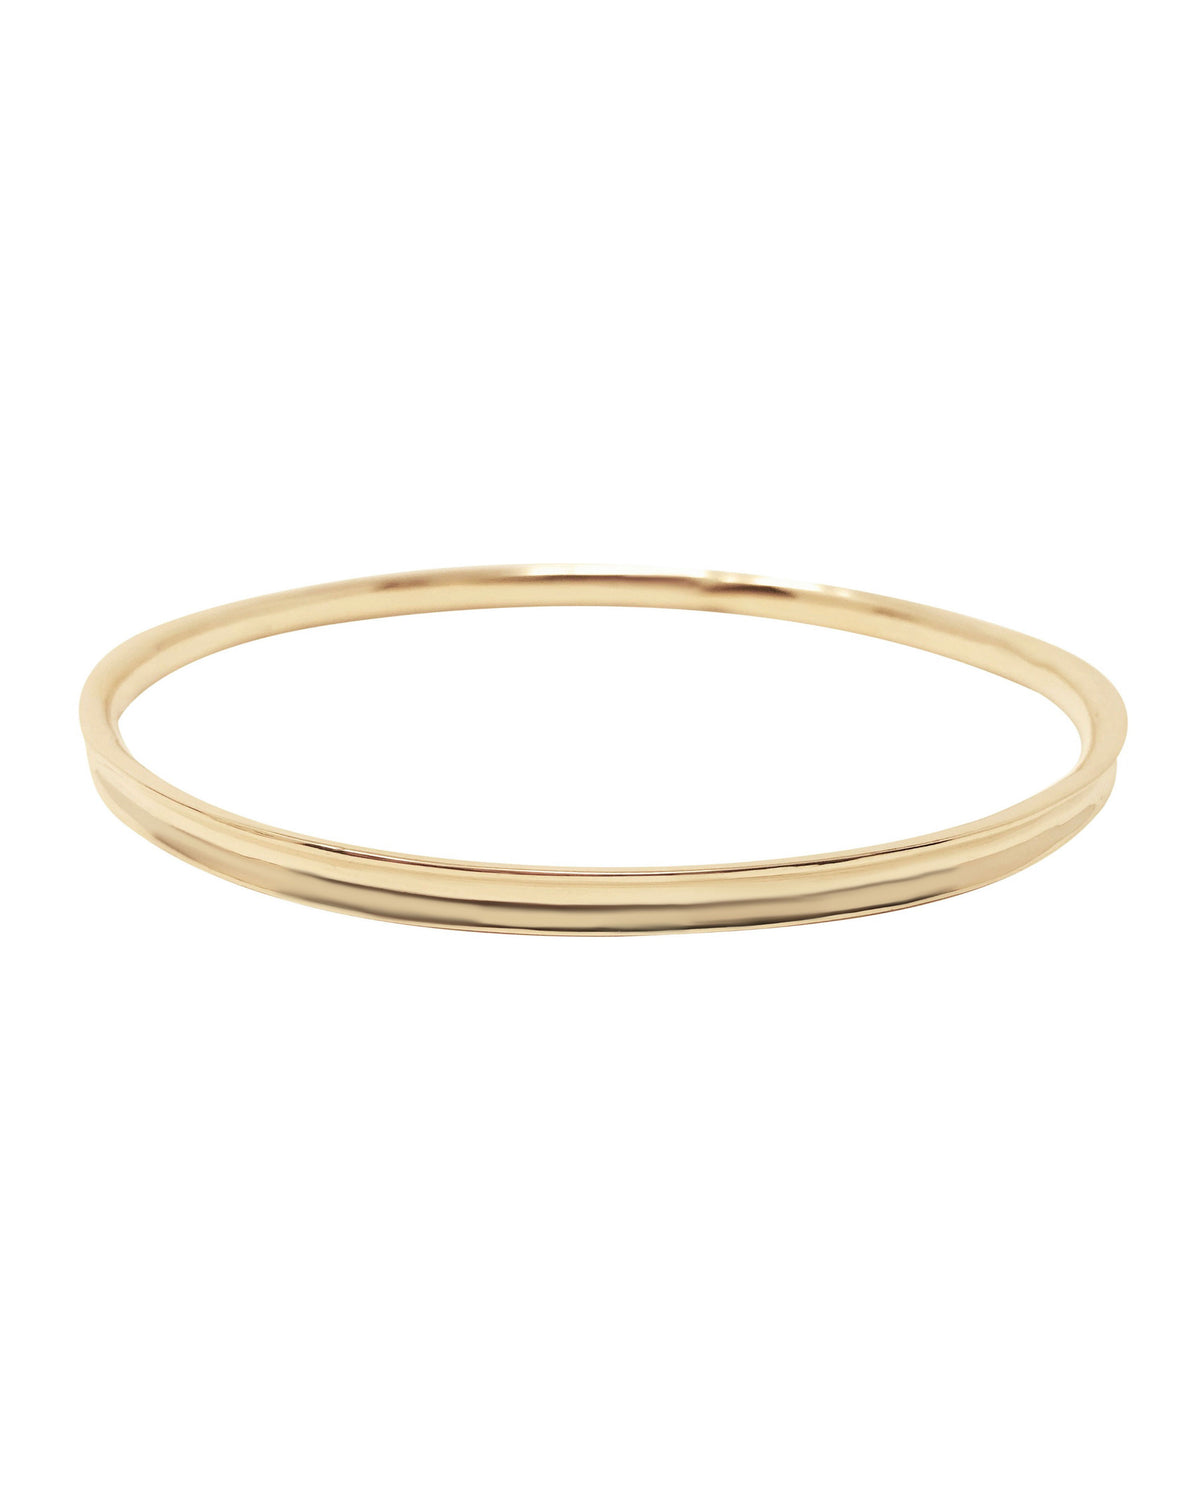 UPPER ARM IMAAN BANGLE